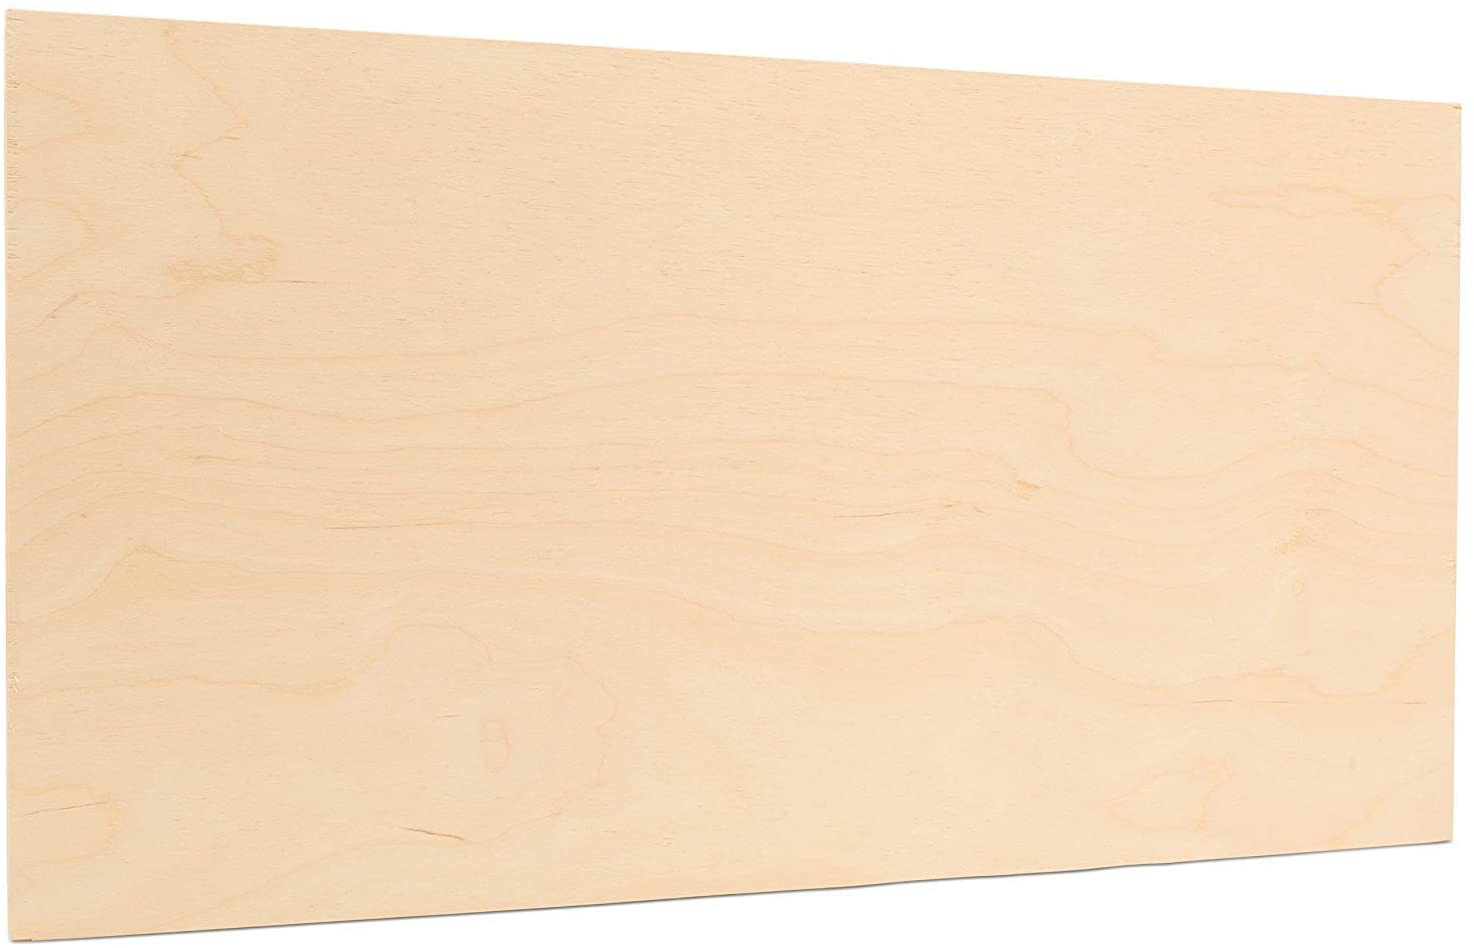 5mm 1/4 x 12 x 20 Inch Premium Baltic Birch Plywood B/BB Grade, Pack of 12 Flat Sheets by Woodpeckers